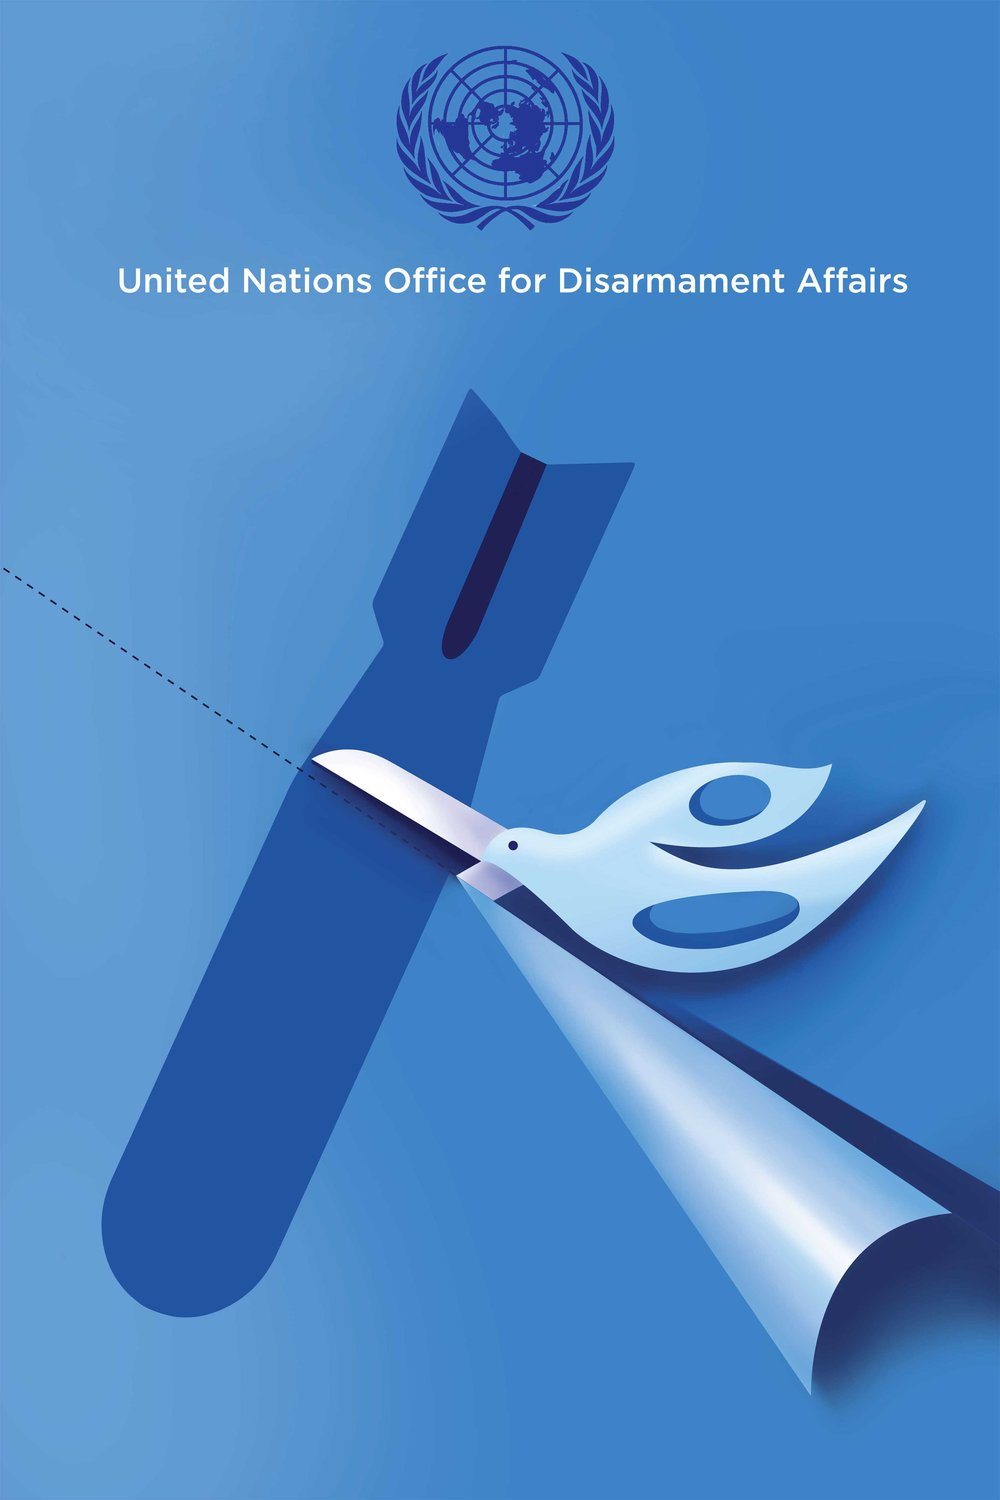 Cutting Barriers Through Peace   Cutting Barriers through Peacewas one of two posters chosen by the United Nations Office of Disarmament Affairs for their 2016 International Campaign for Nuclear Disarmament. As part of the campaign both posters were exhibited in UN offices in New York, Geneva, Vienna and Nagasaki in Japan. Currently in the permanent collection at the UN General Assembly.